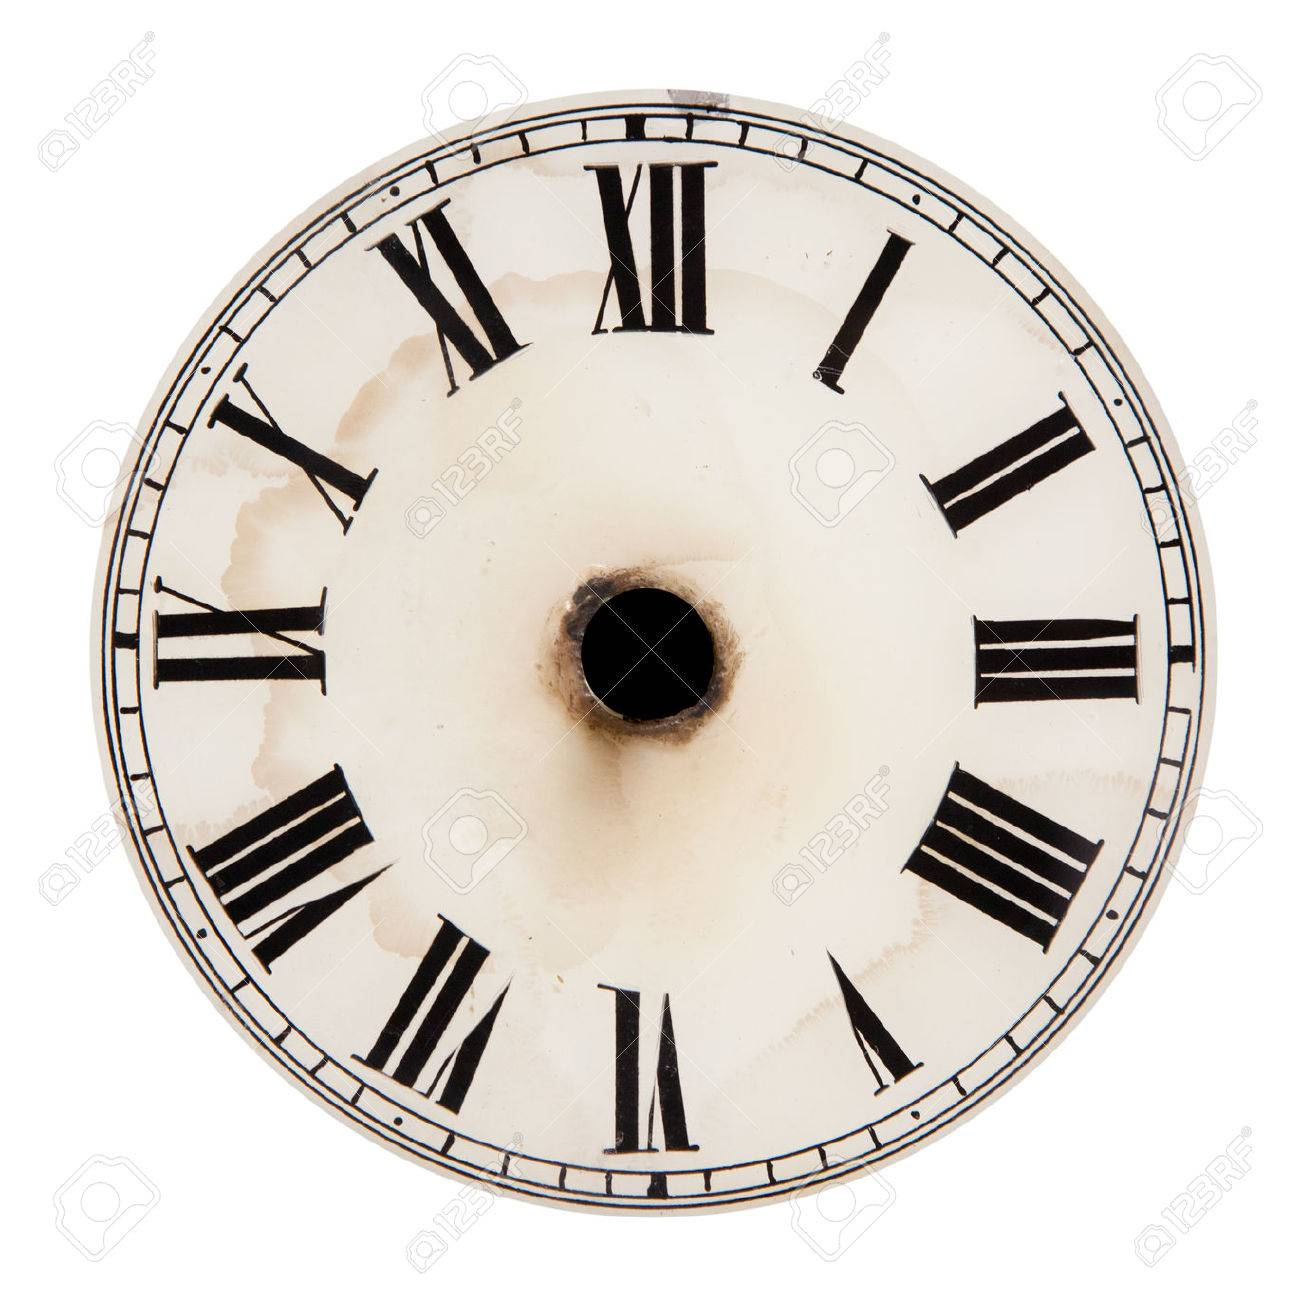 worksheet Empty Clock Faces clock face images stock pictures royalty free photos blank dial without hands